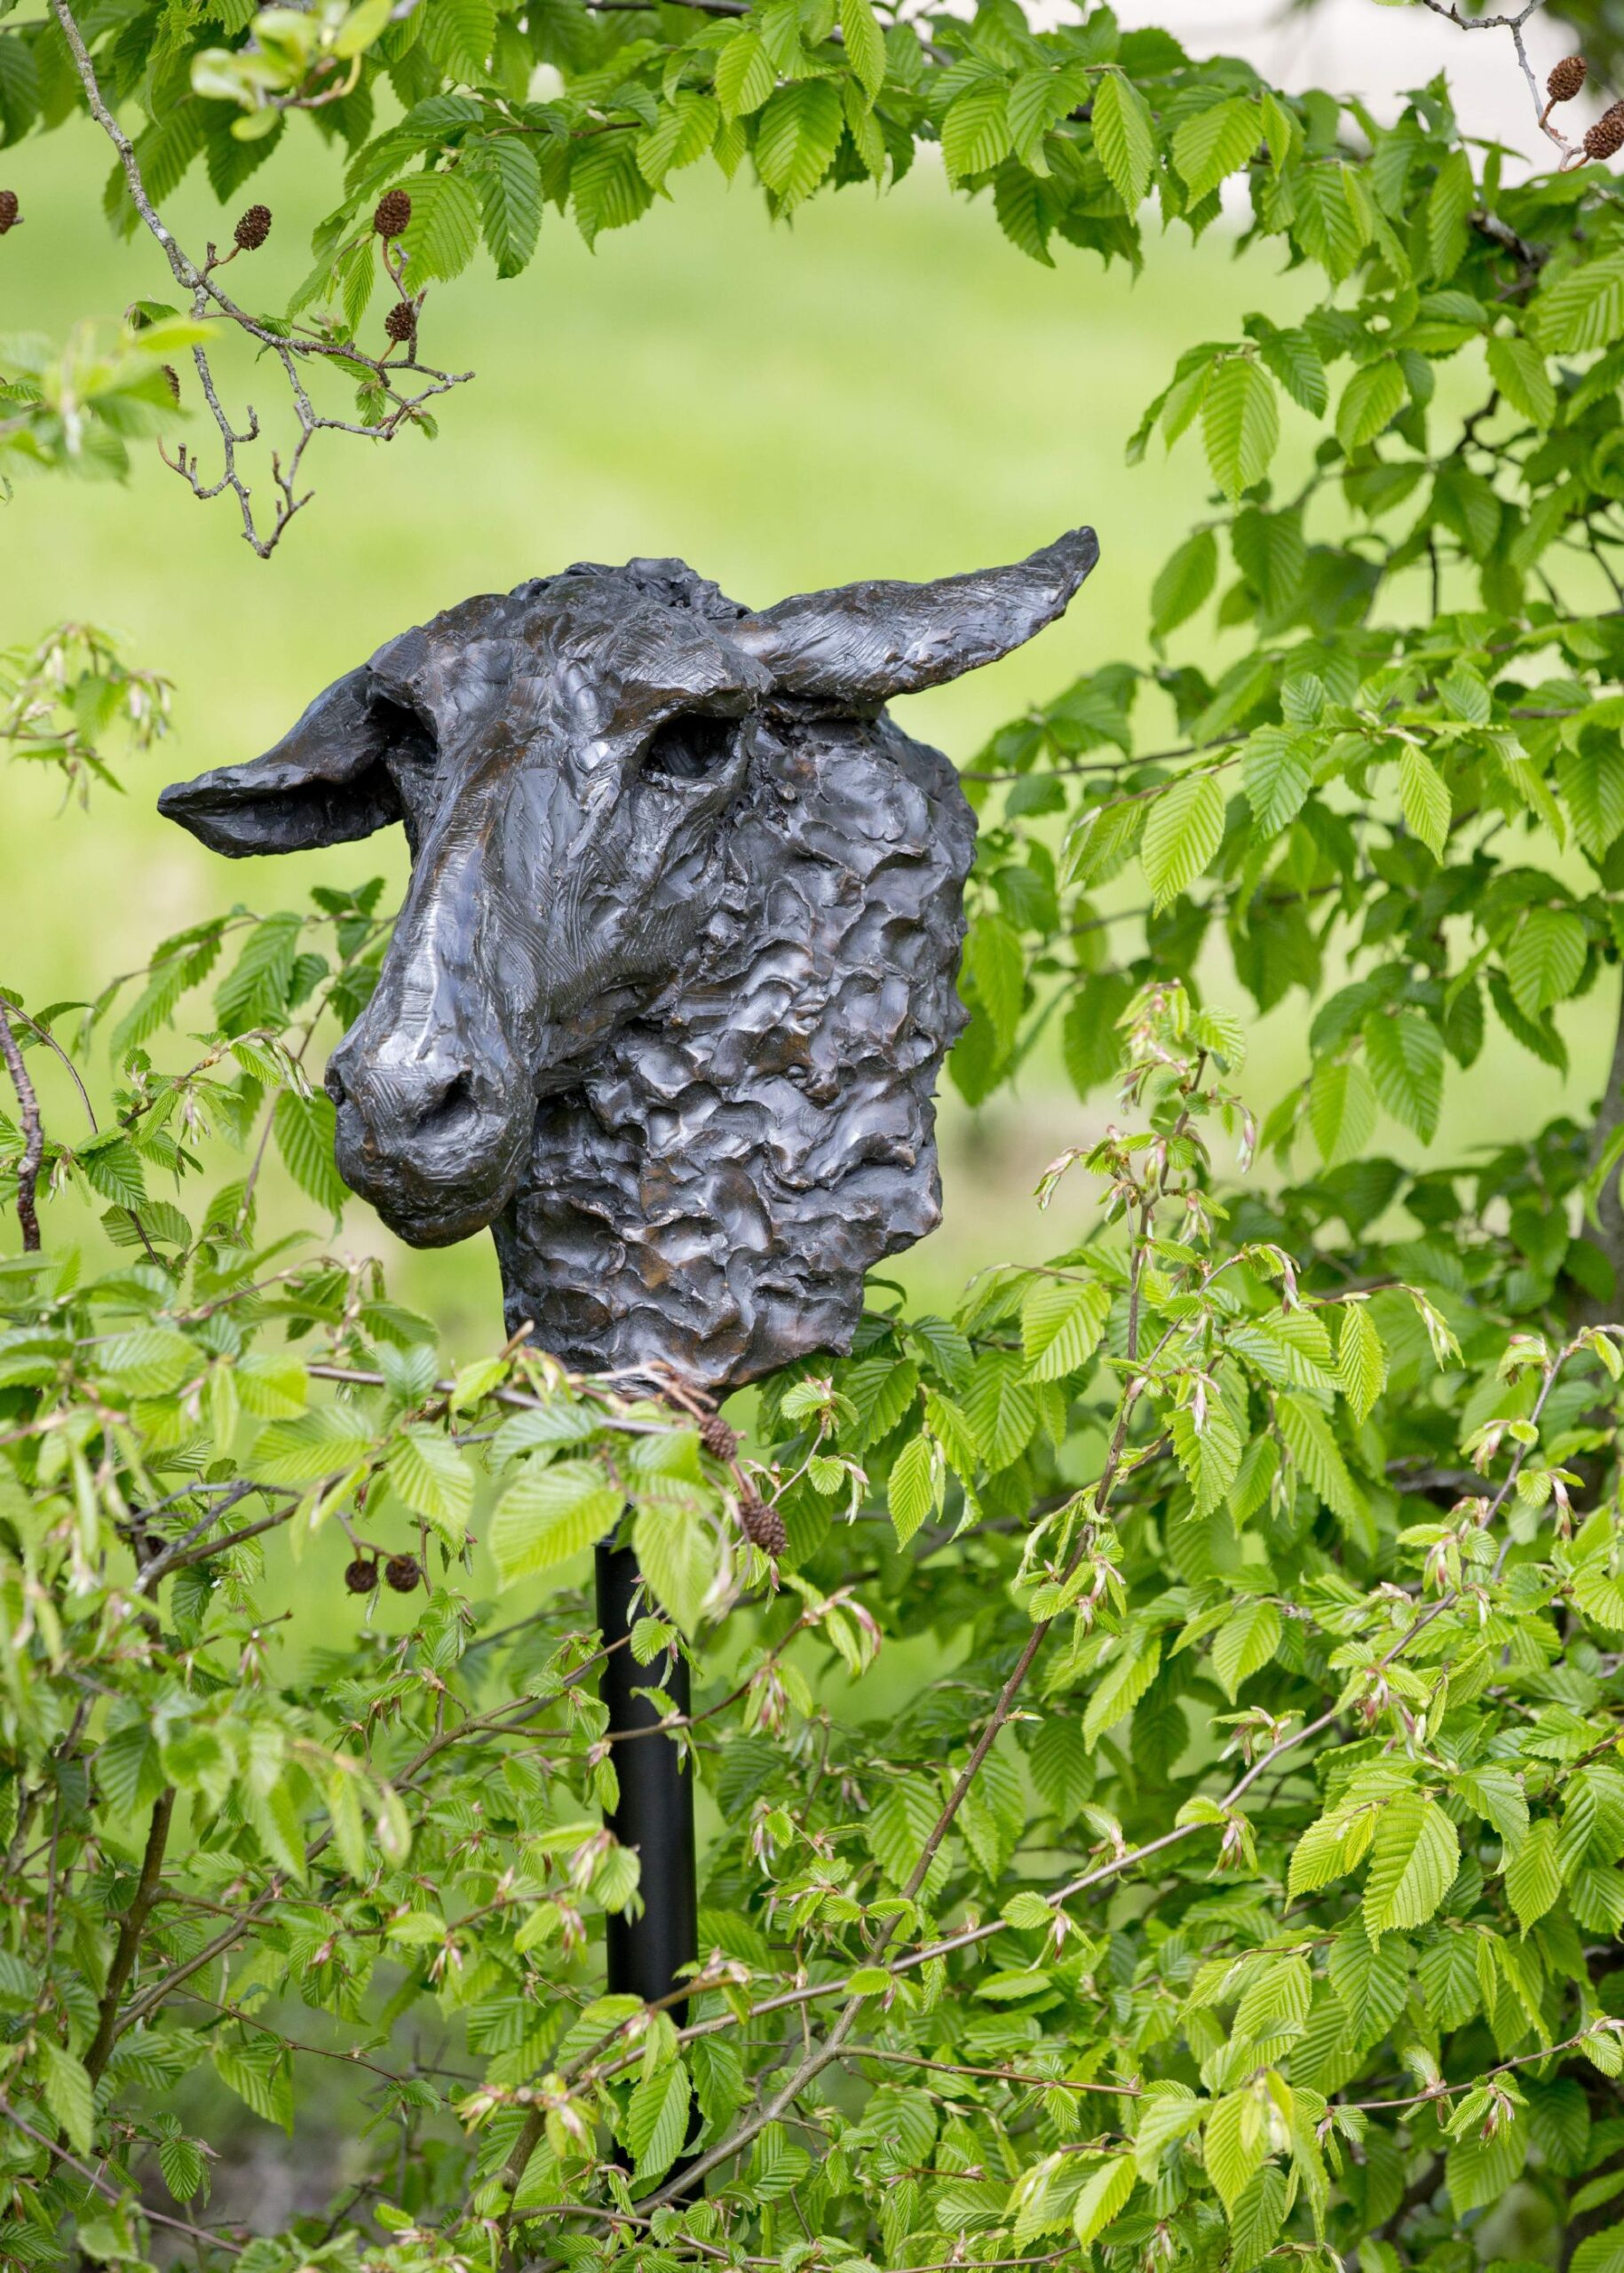 Sculpture - Bronze - Outdoor - Garden Sheep Head 1b